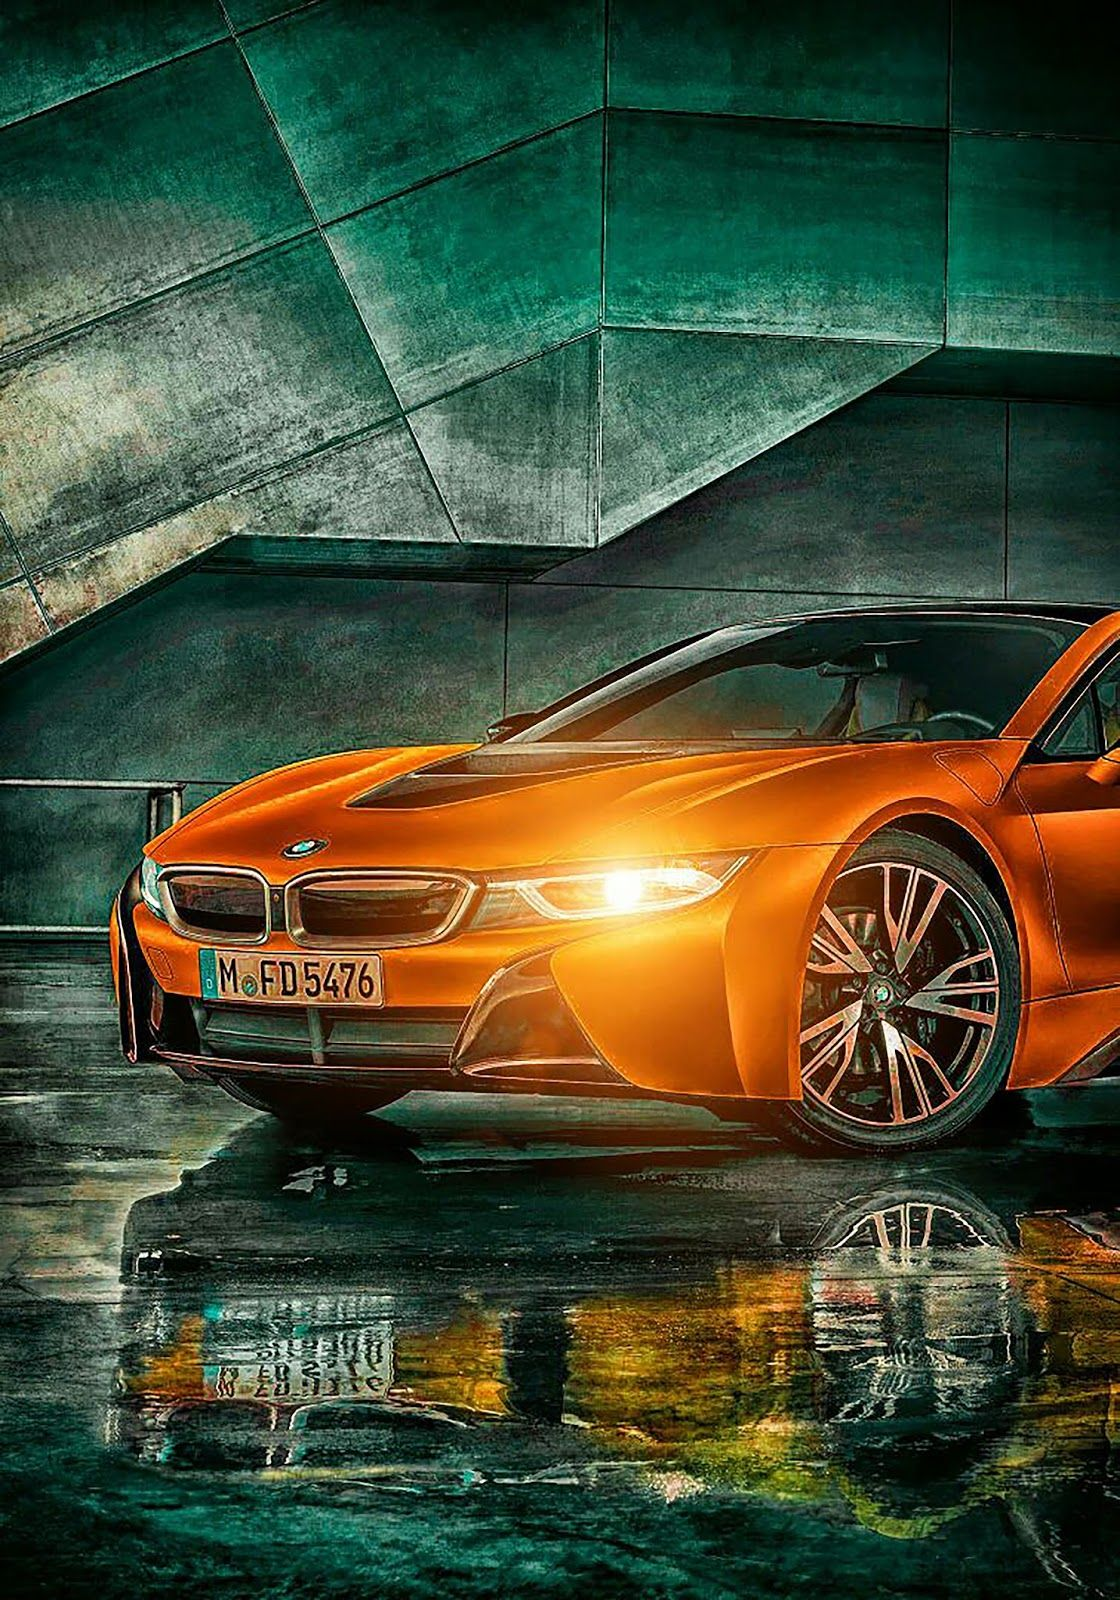 Background Images For Photoshop Editing Hd Online Car